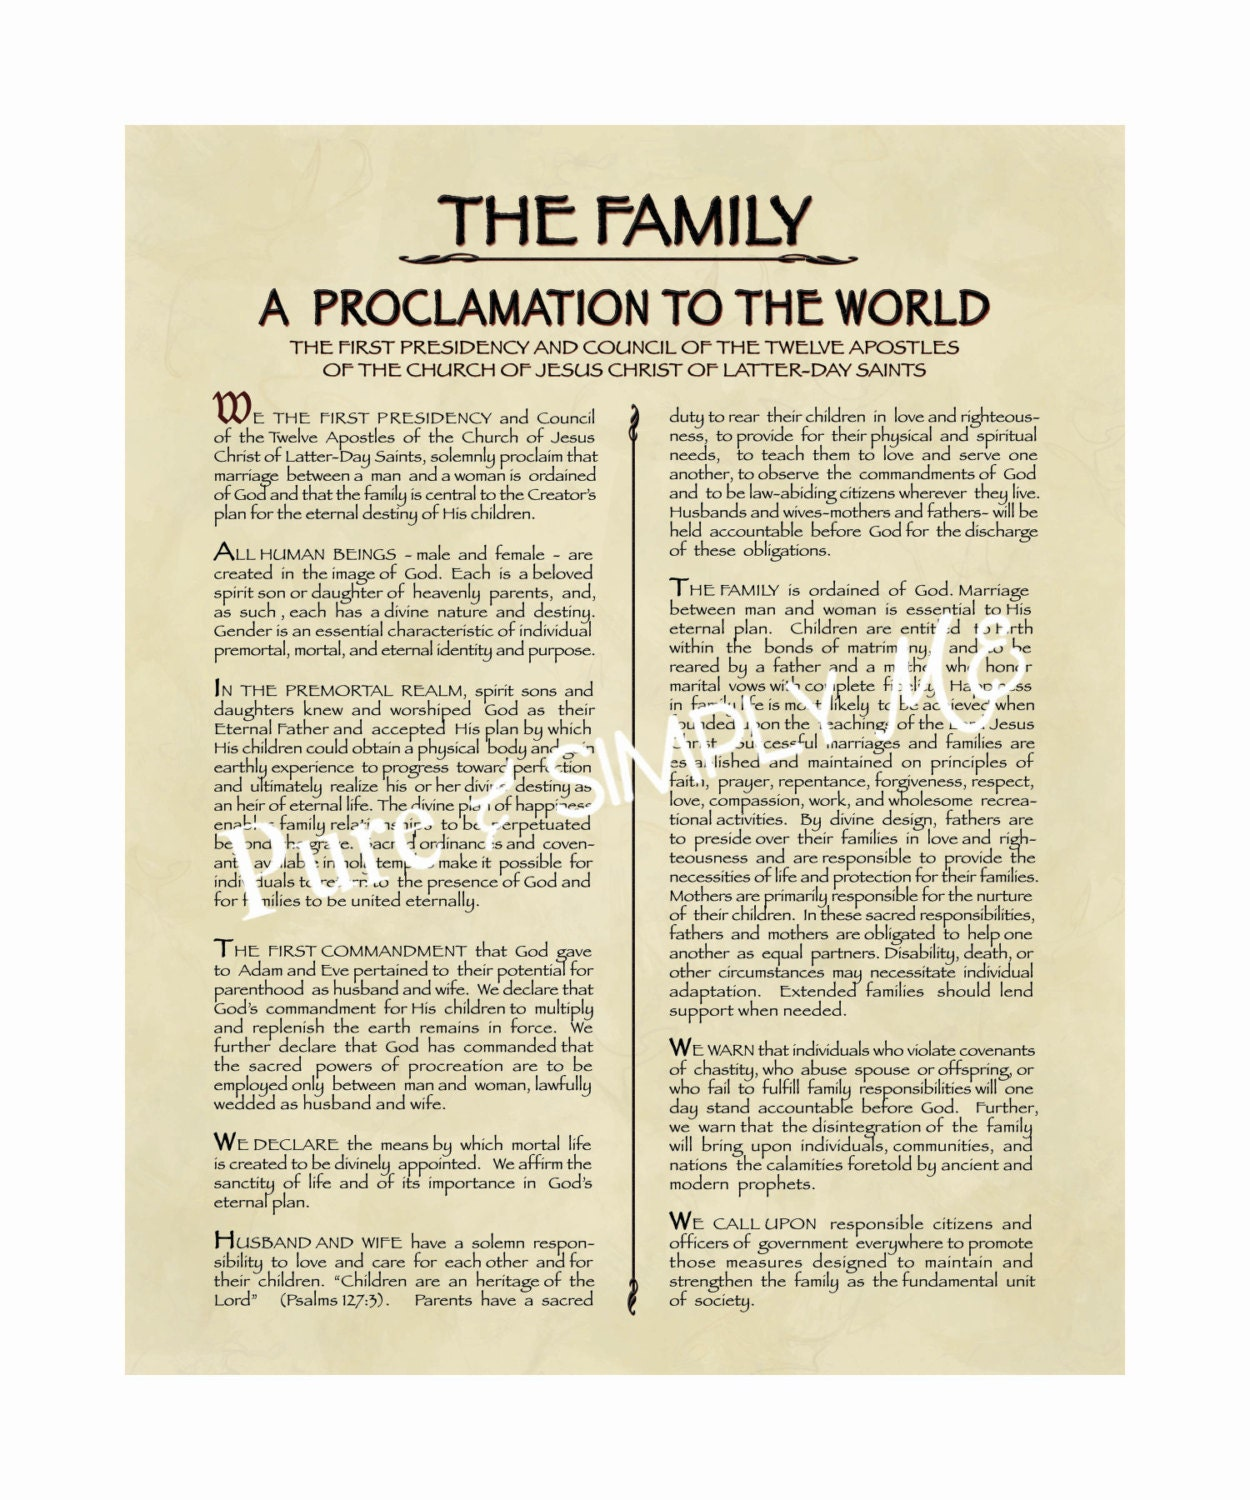 Family Proclamation Digital File - LDS Proclamation to the World - The  Family